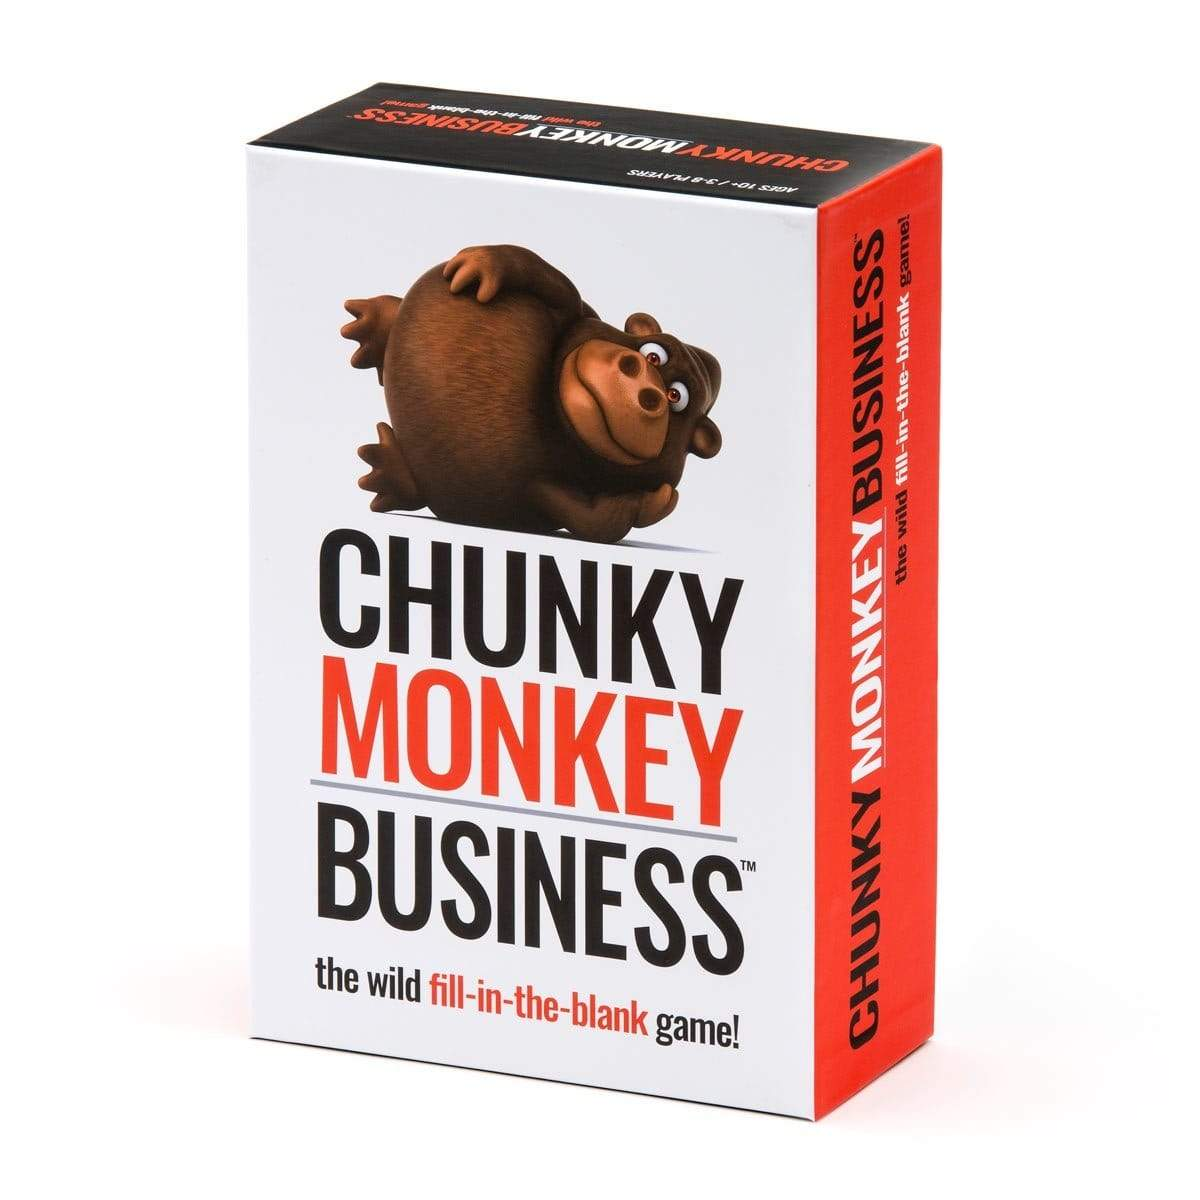 Chunky Monkey Business The Good Game Co. Board Games